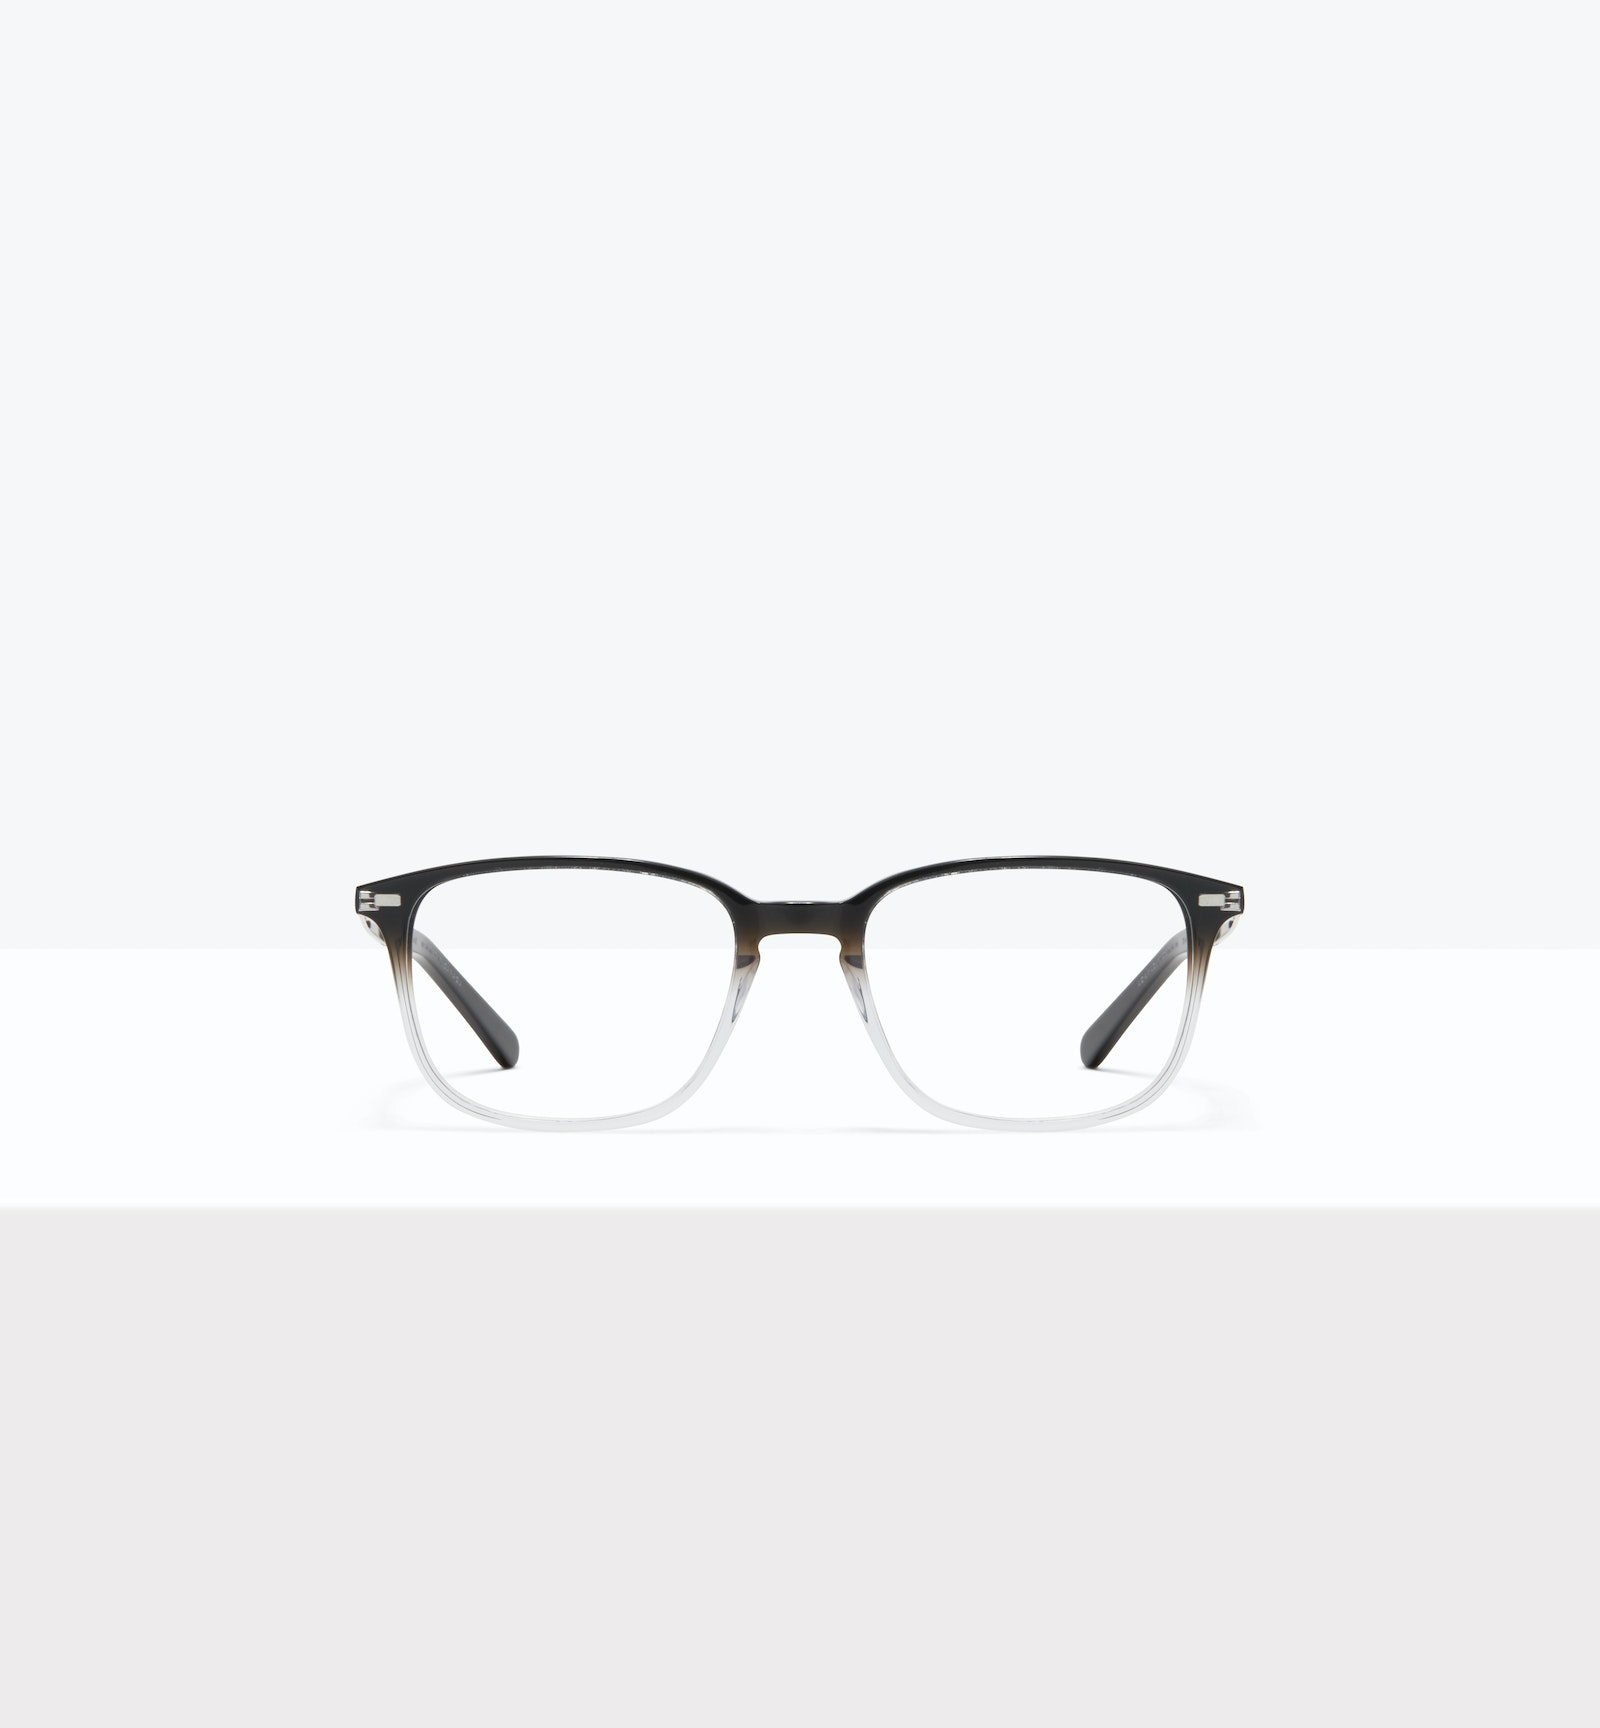 Affordable Fashion Glasses Rectangle Eyeglasses Men Sharp L Onyx Clear